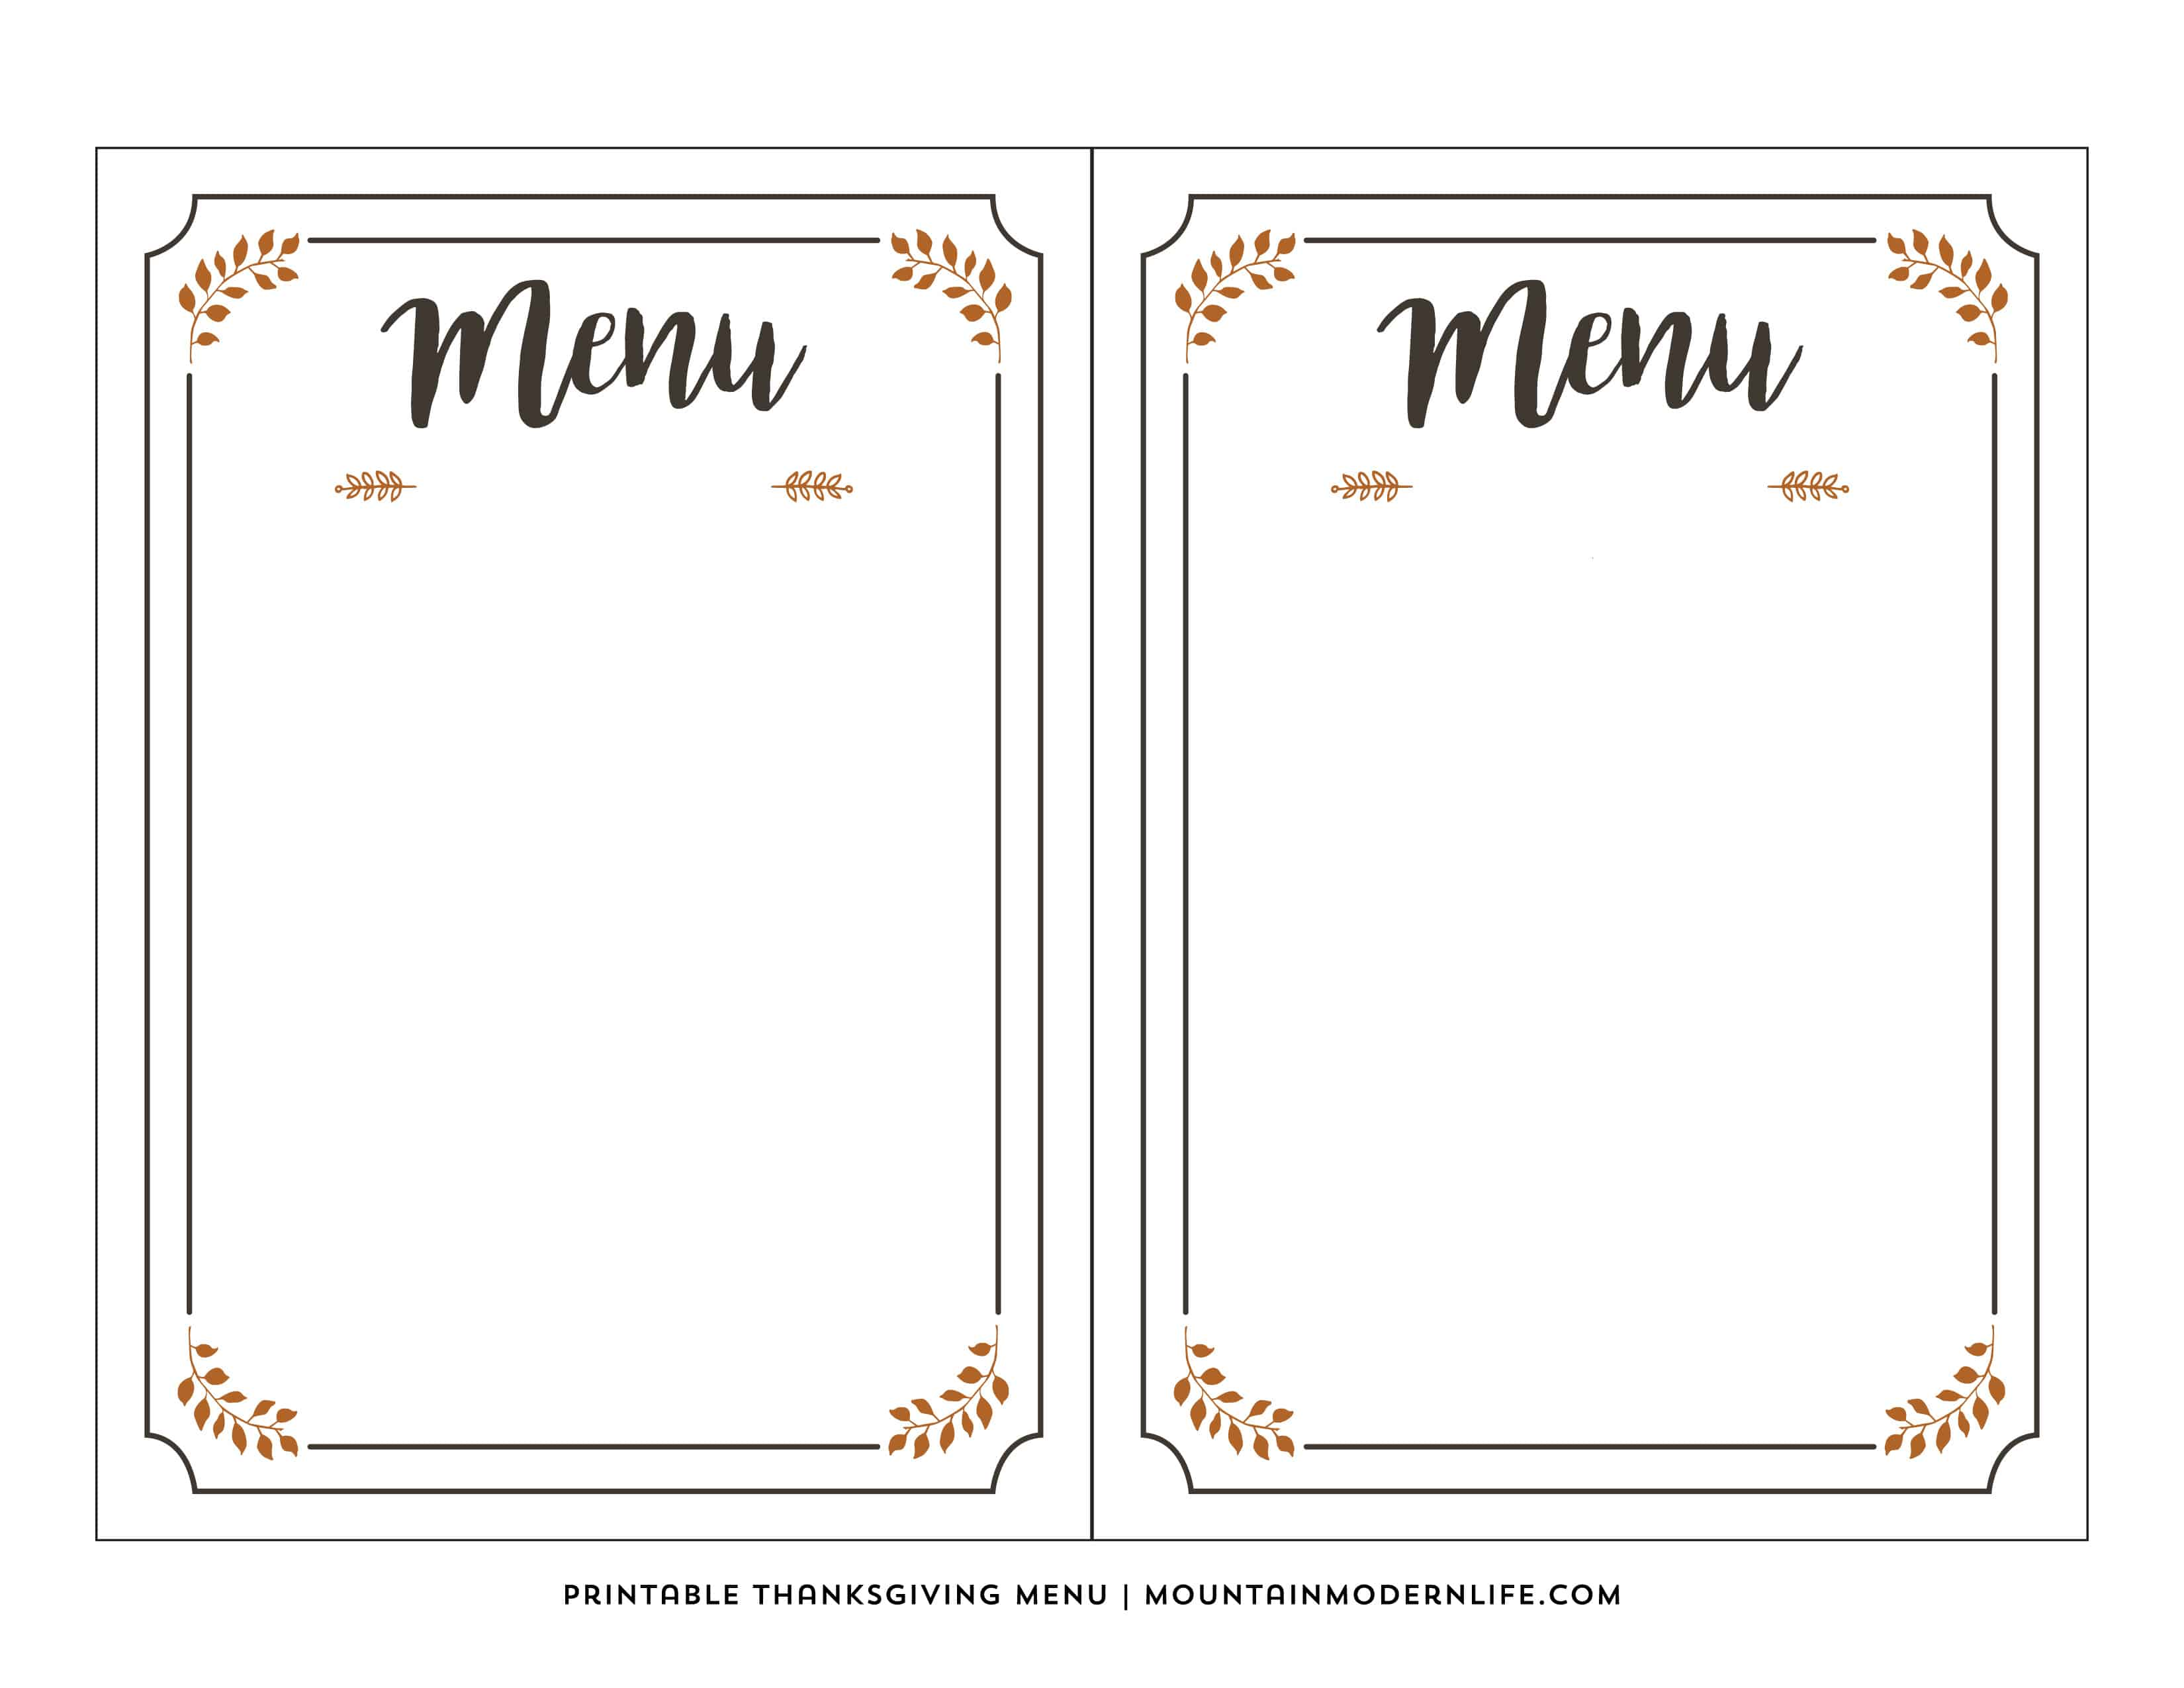 Free Printable Thanksgiving Menu